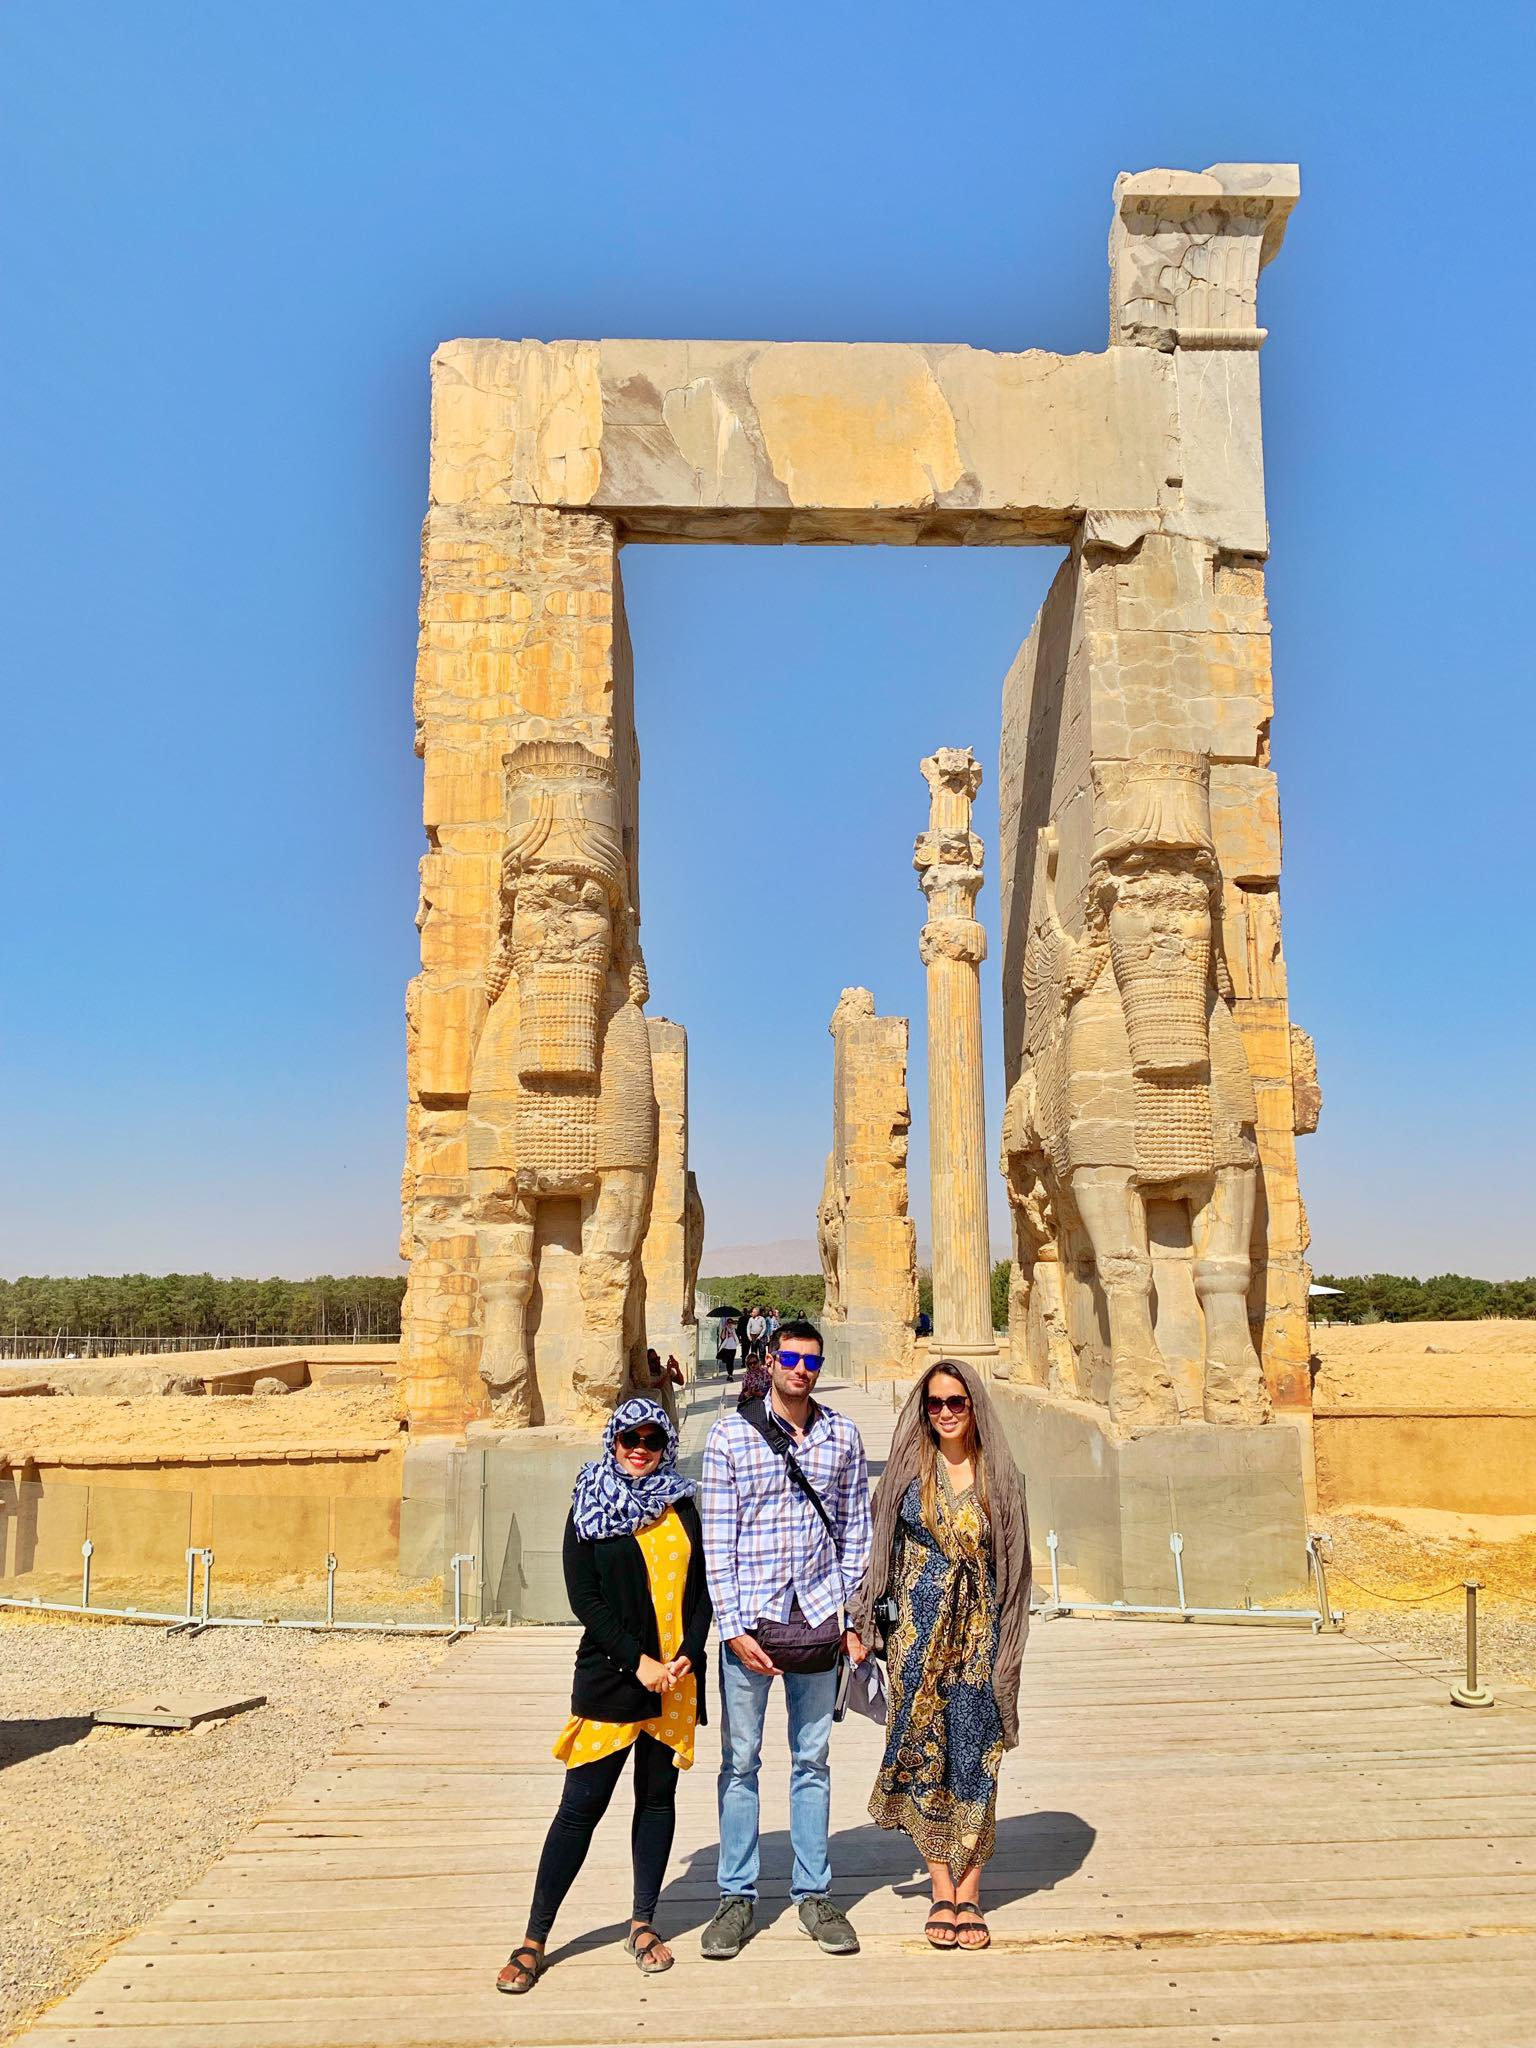 Kach Solo Travels in 2019 UNESCO heritages sites of Persepolis and Pasagardae17.jpg